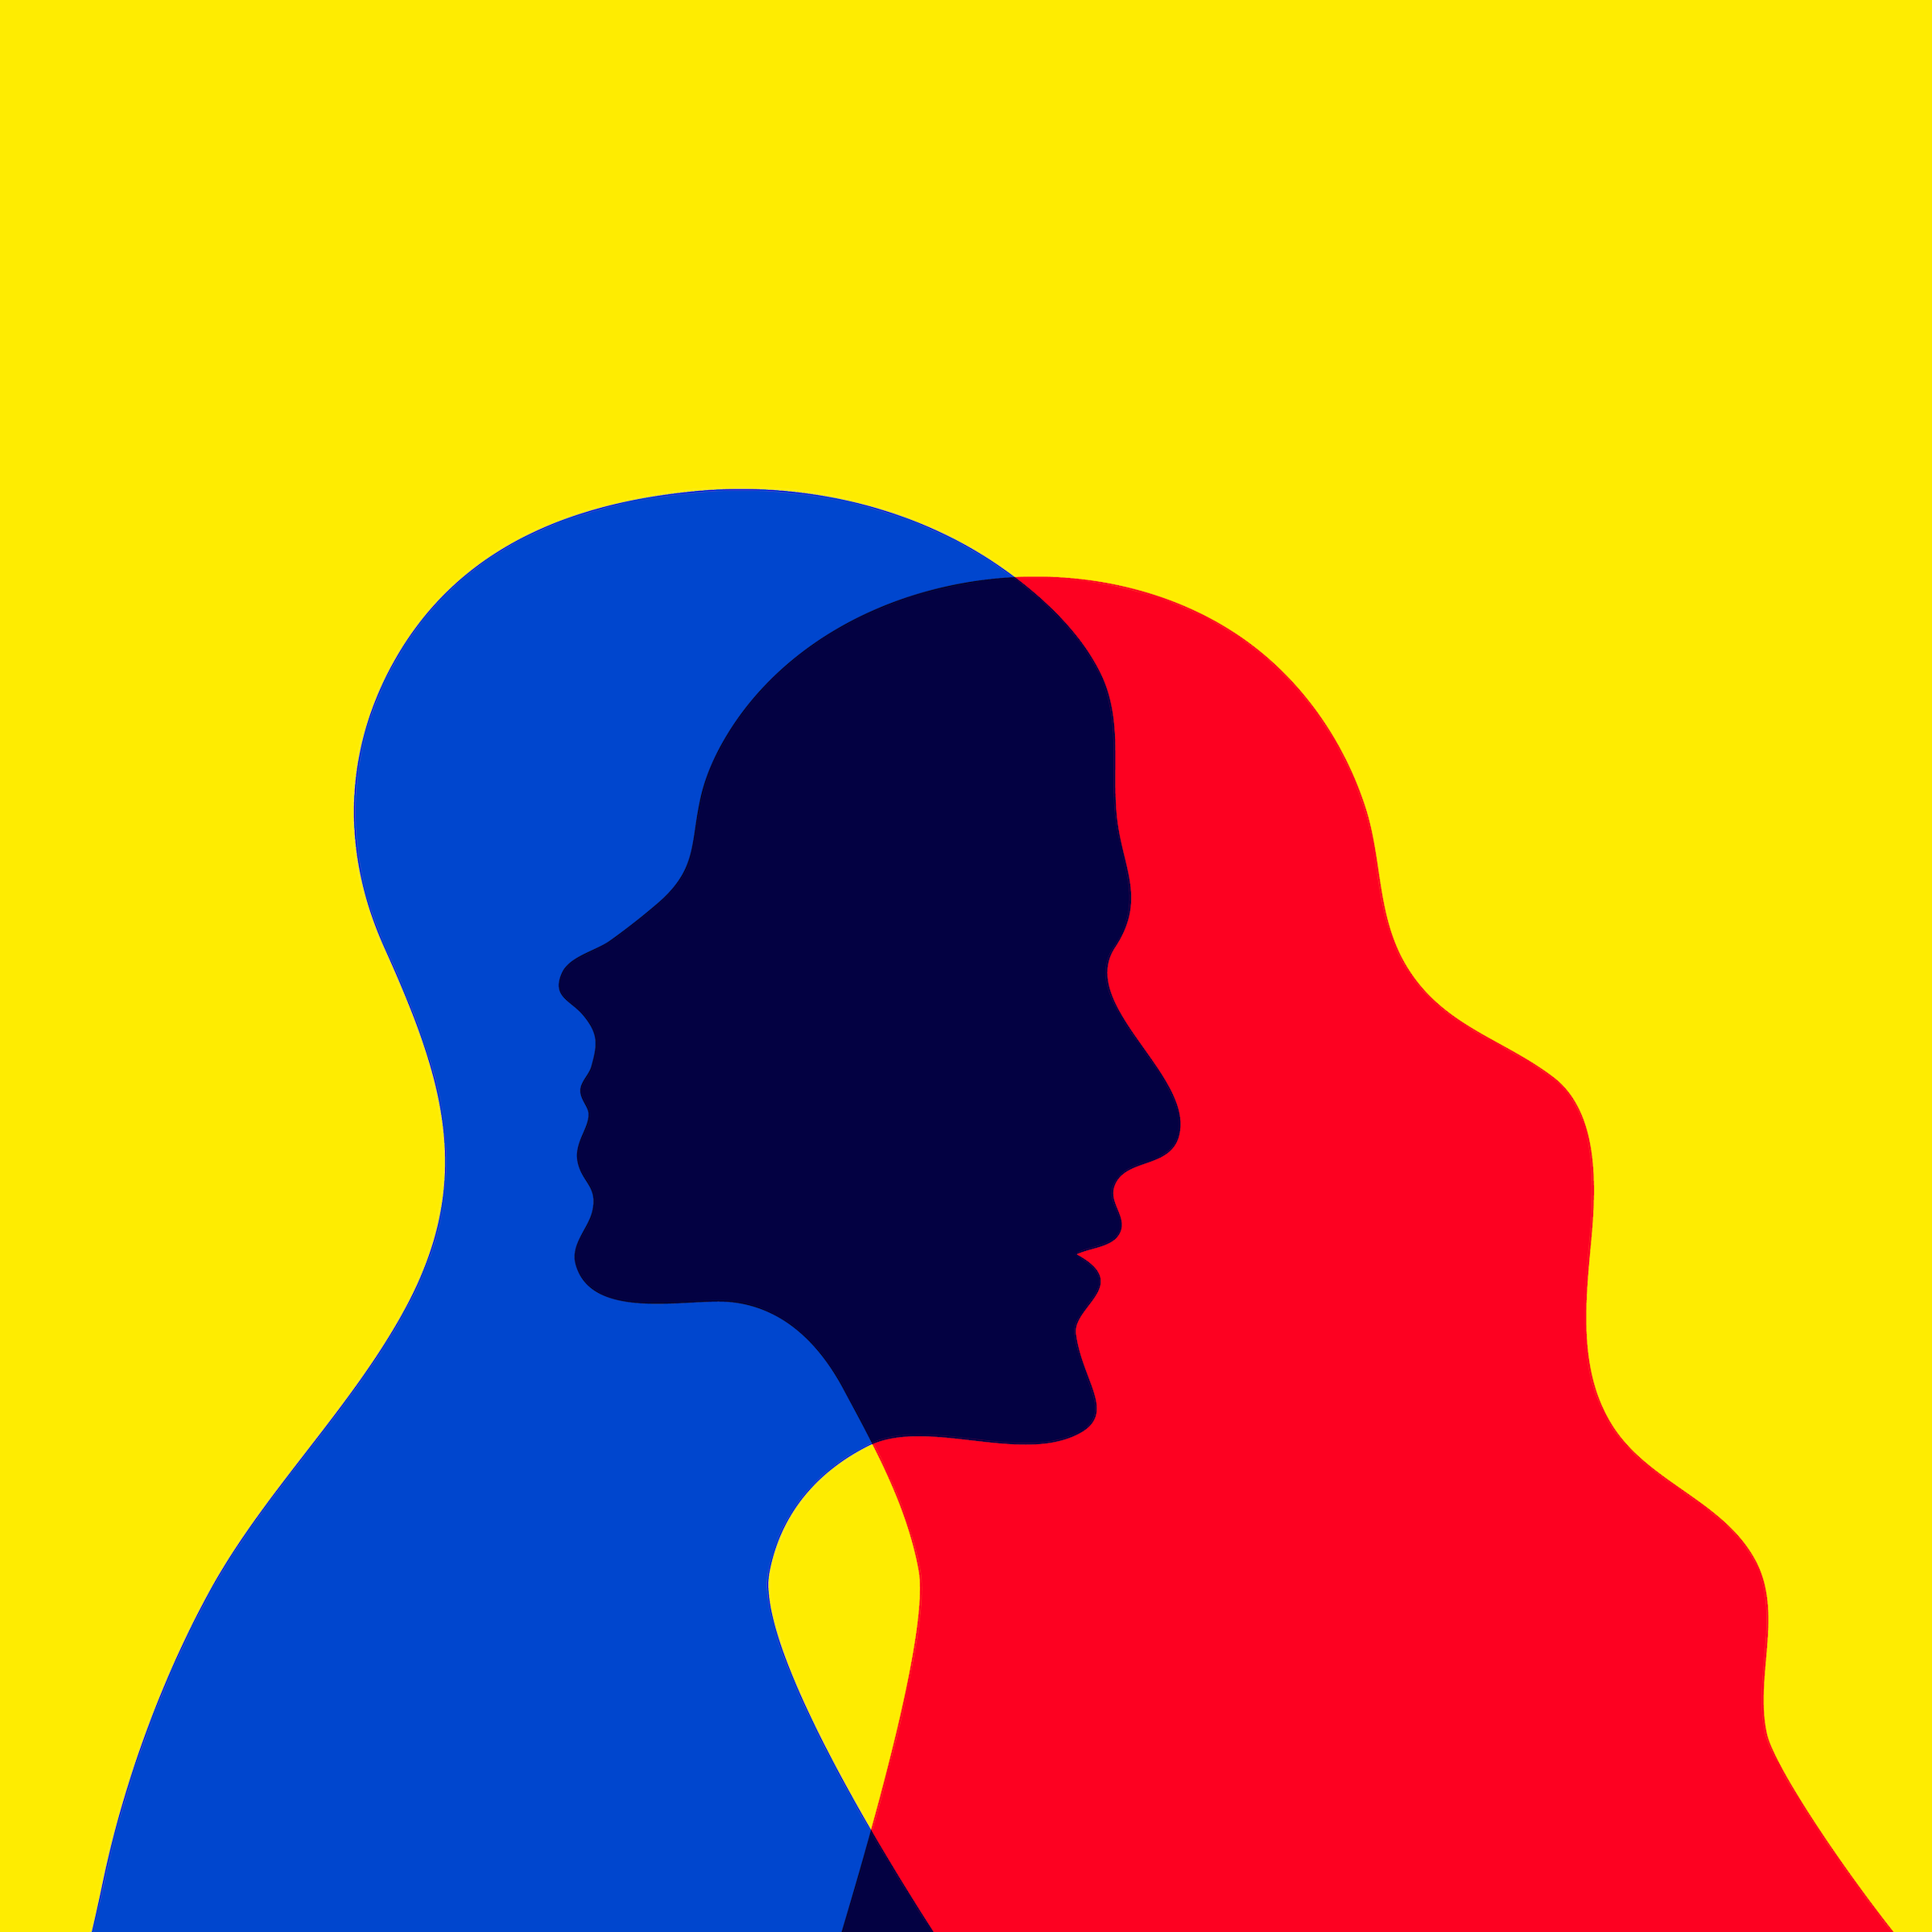 A blue silhouette of a bald person overlapping a red silhouette of a long-haired person, all on a yellow background.